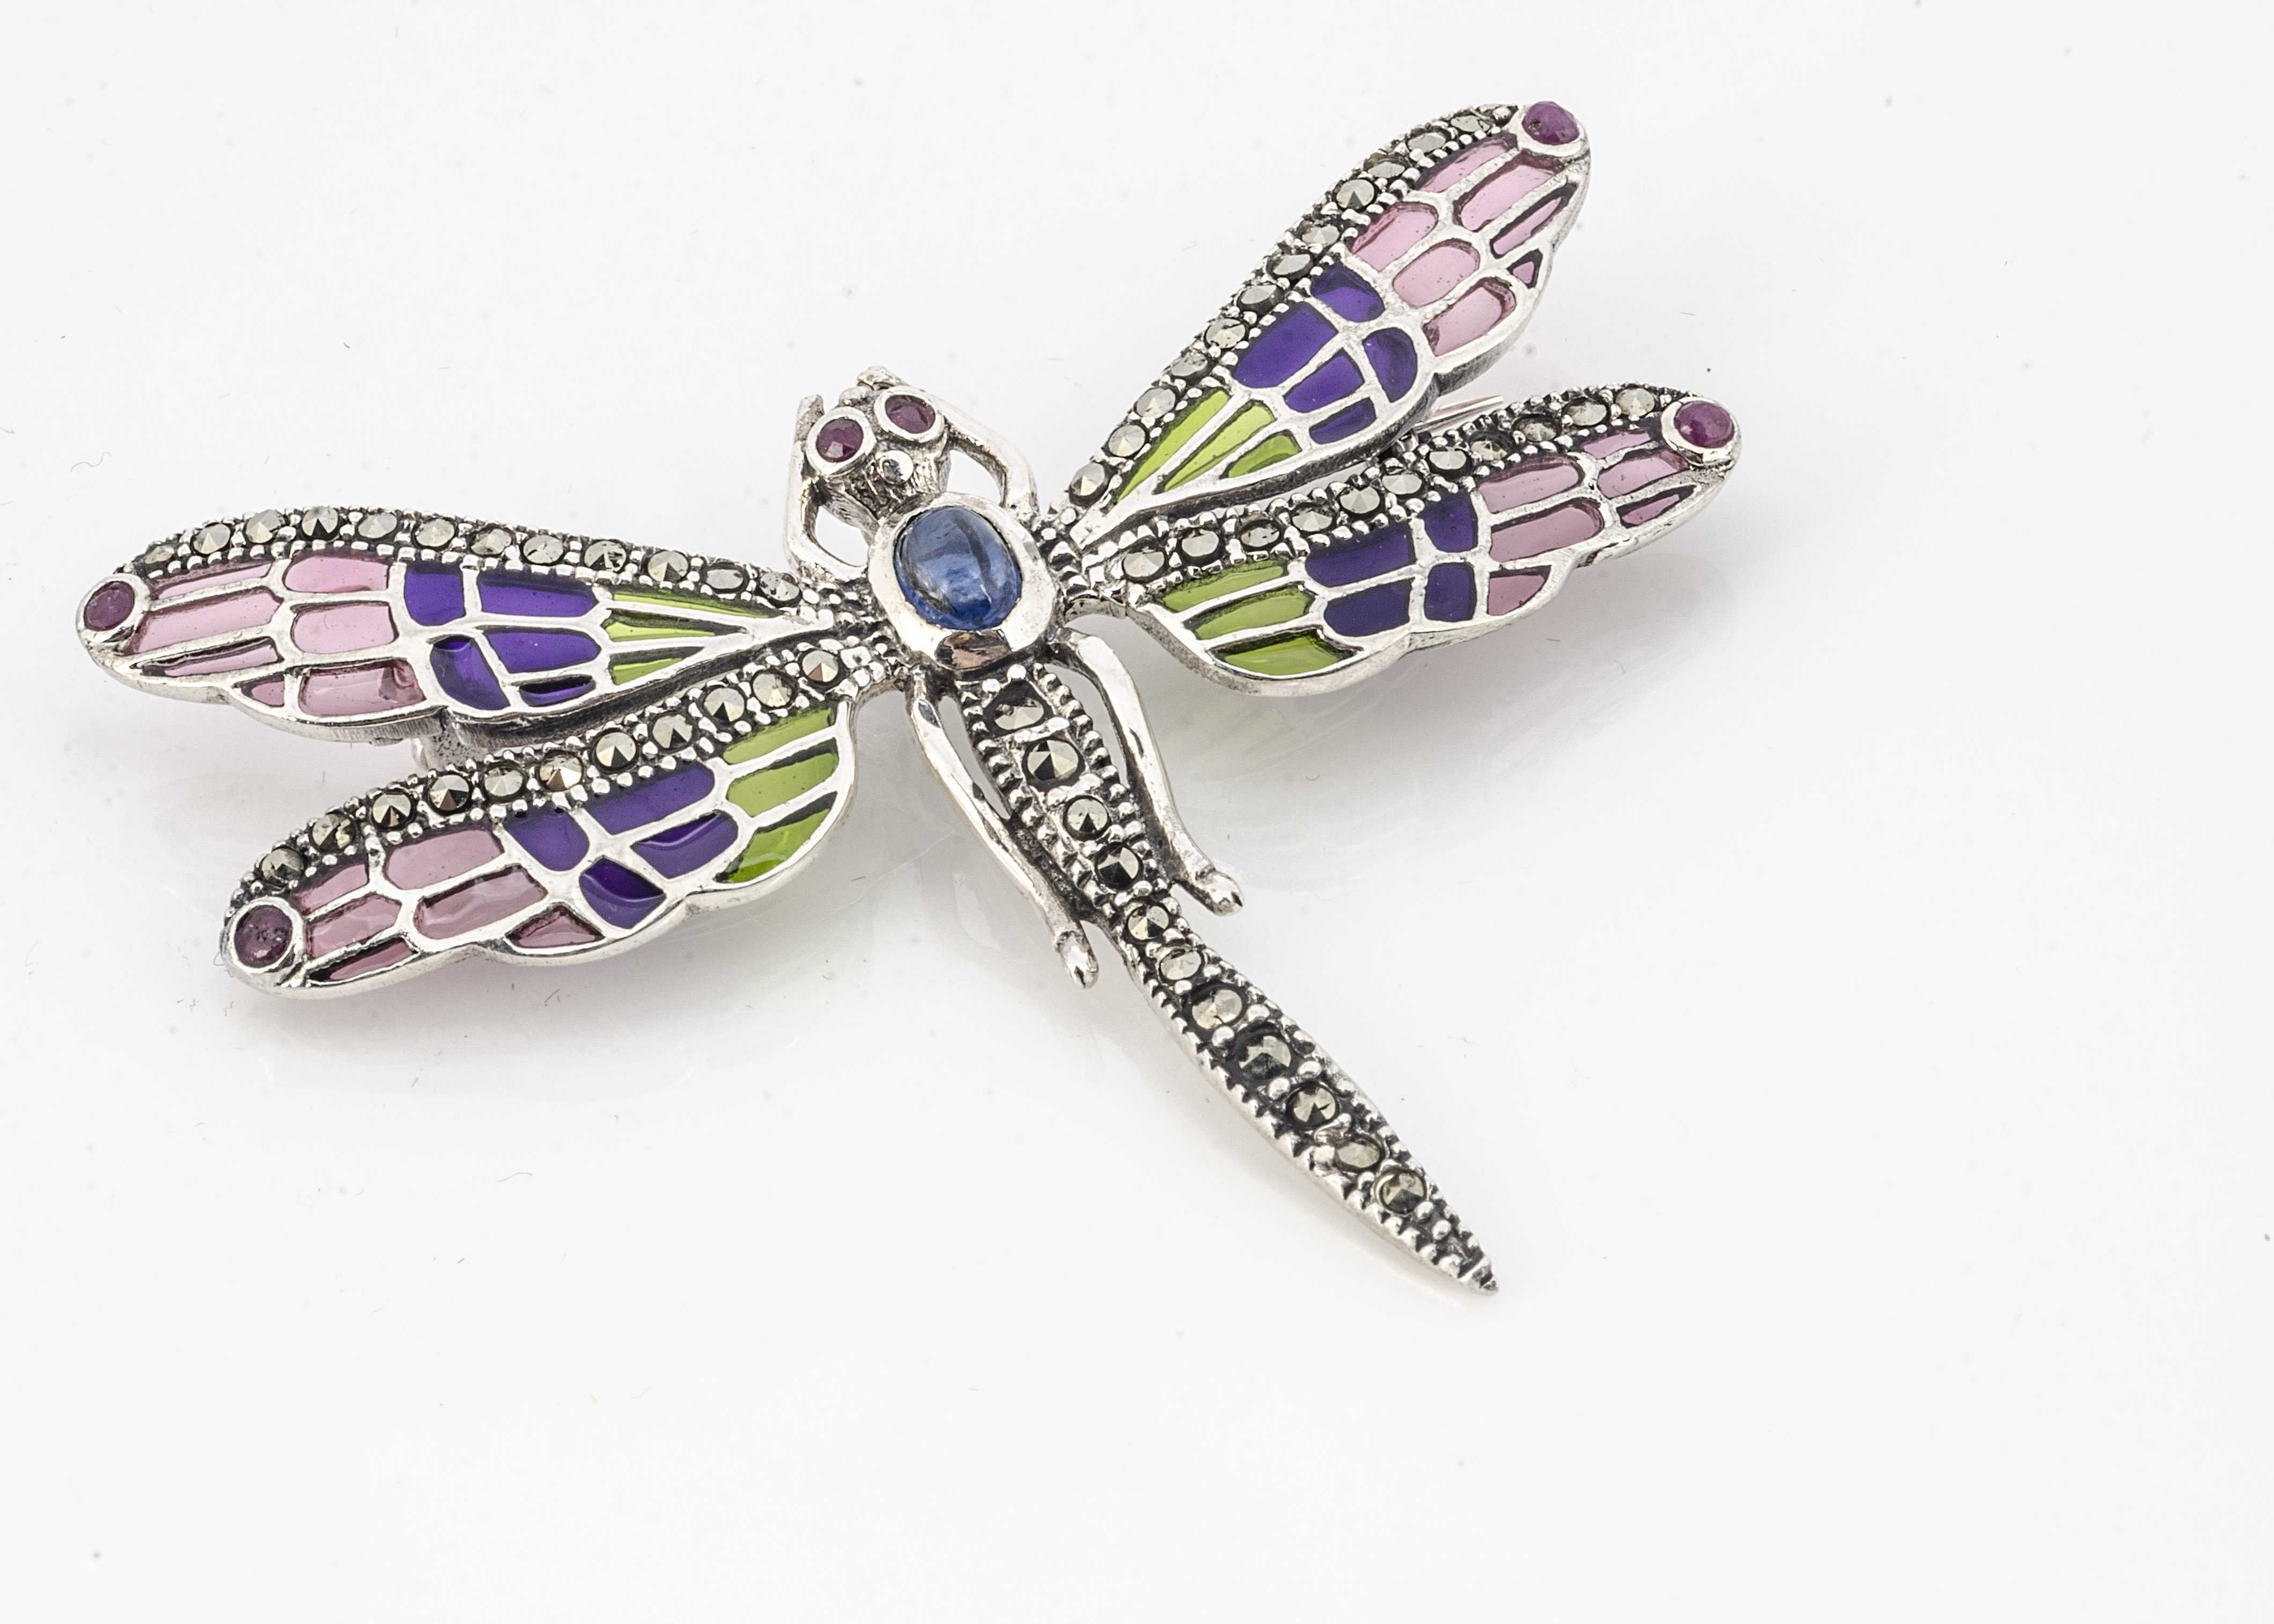 A white metal plique a jour dragonfly brooch, set with cabochon ruby eyes, sapphire abdomen and